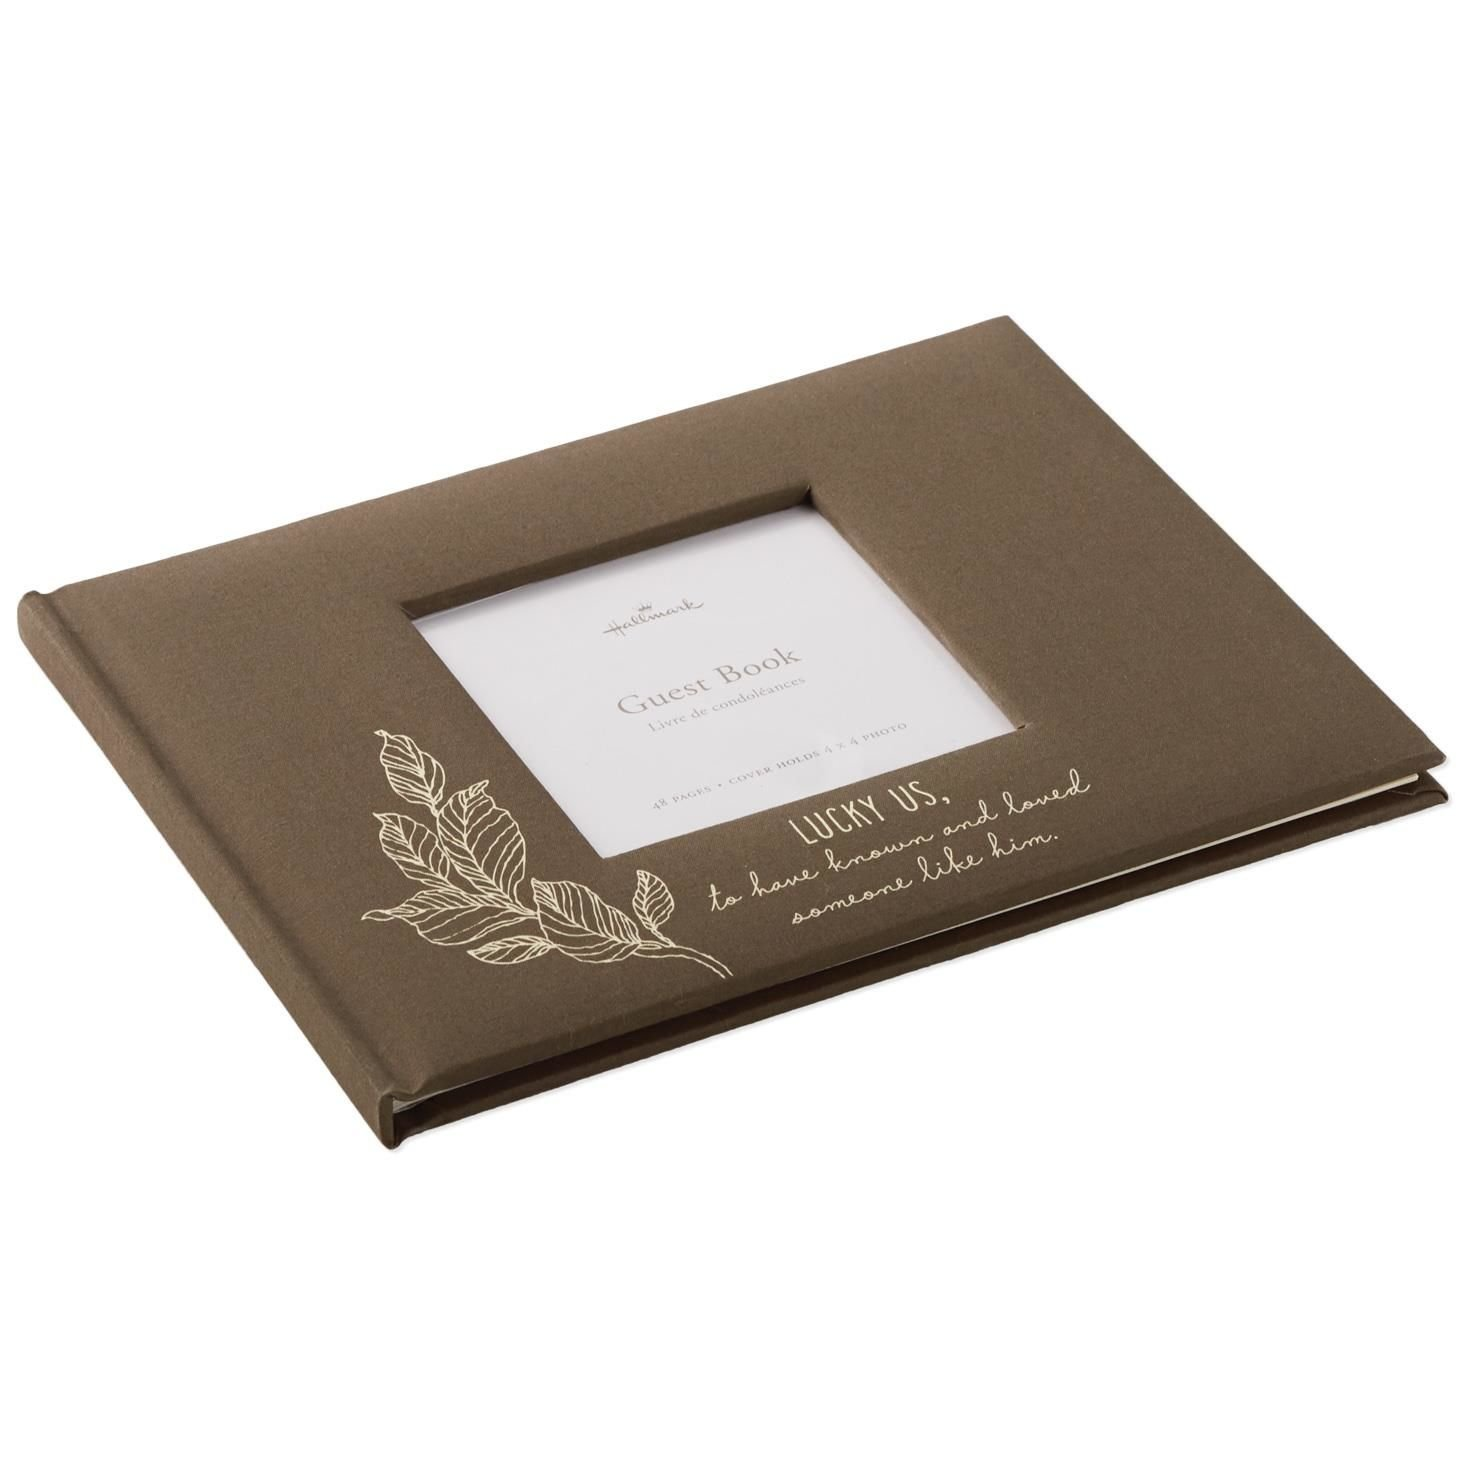 Hallmark Someone Like Him Memorial Guest Book by Hallmark